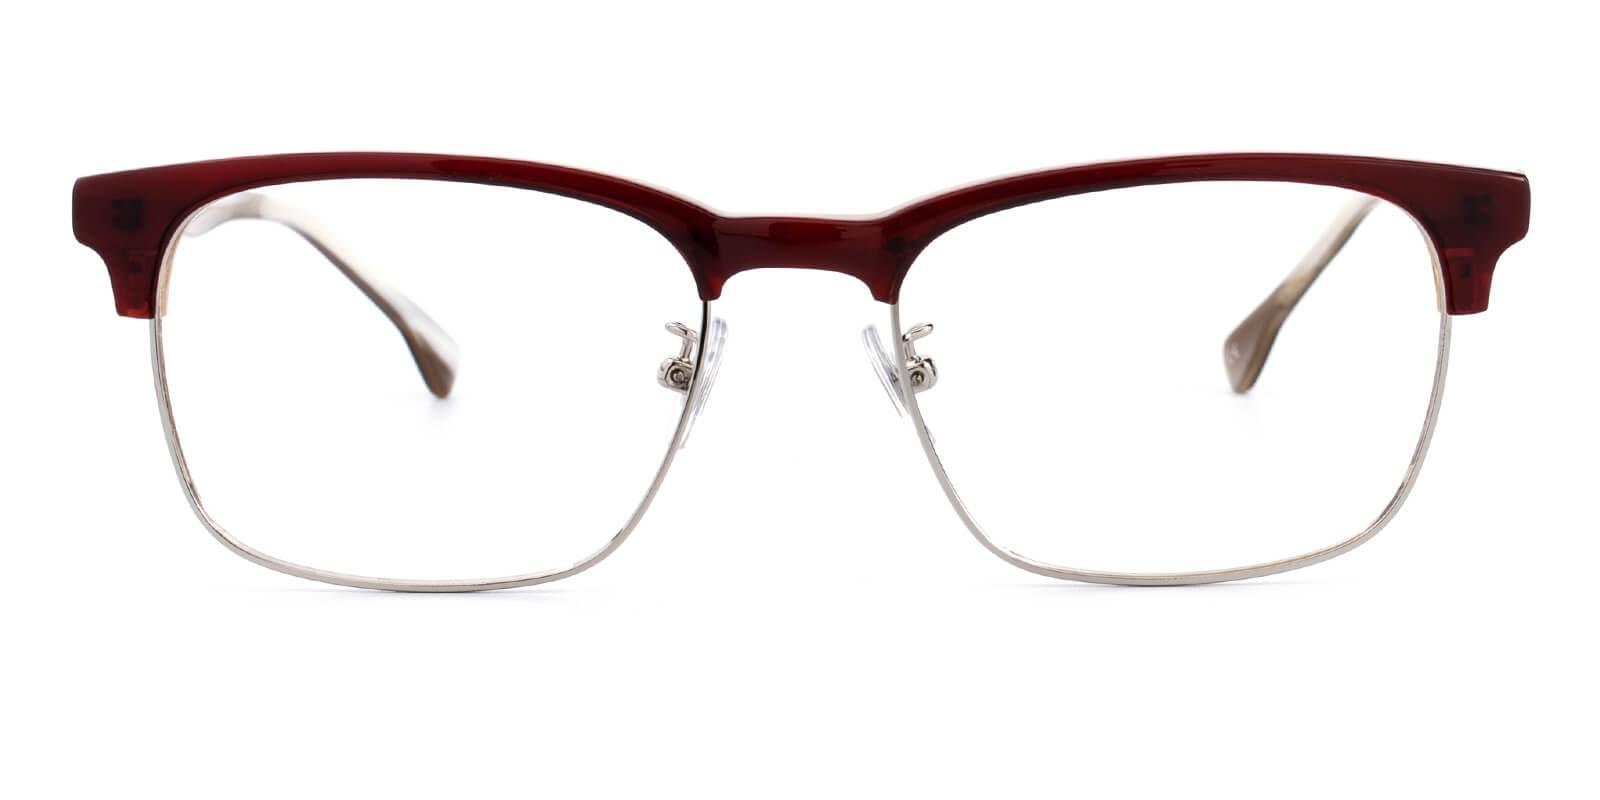 Sublime-Red-Browline-Combination-Eyeglasses-additional2